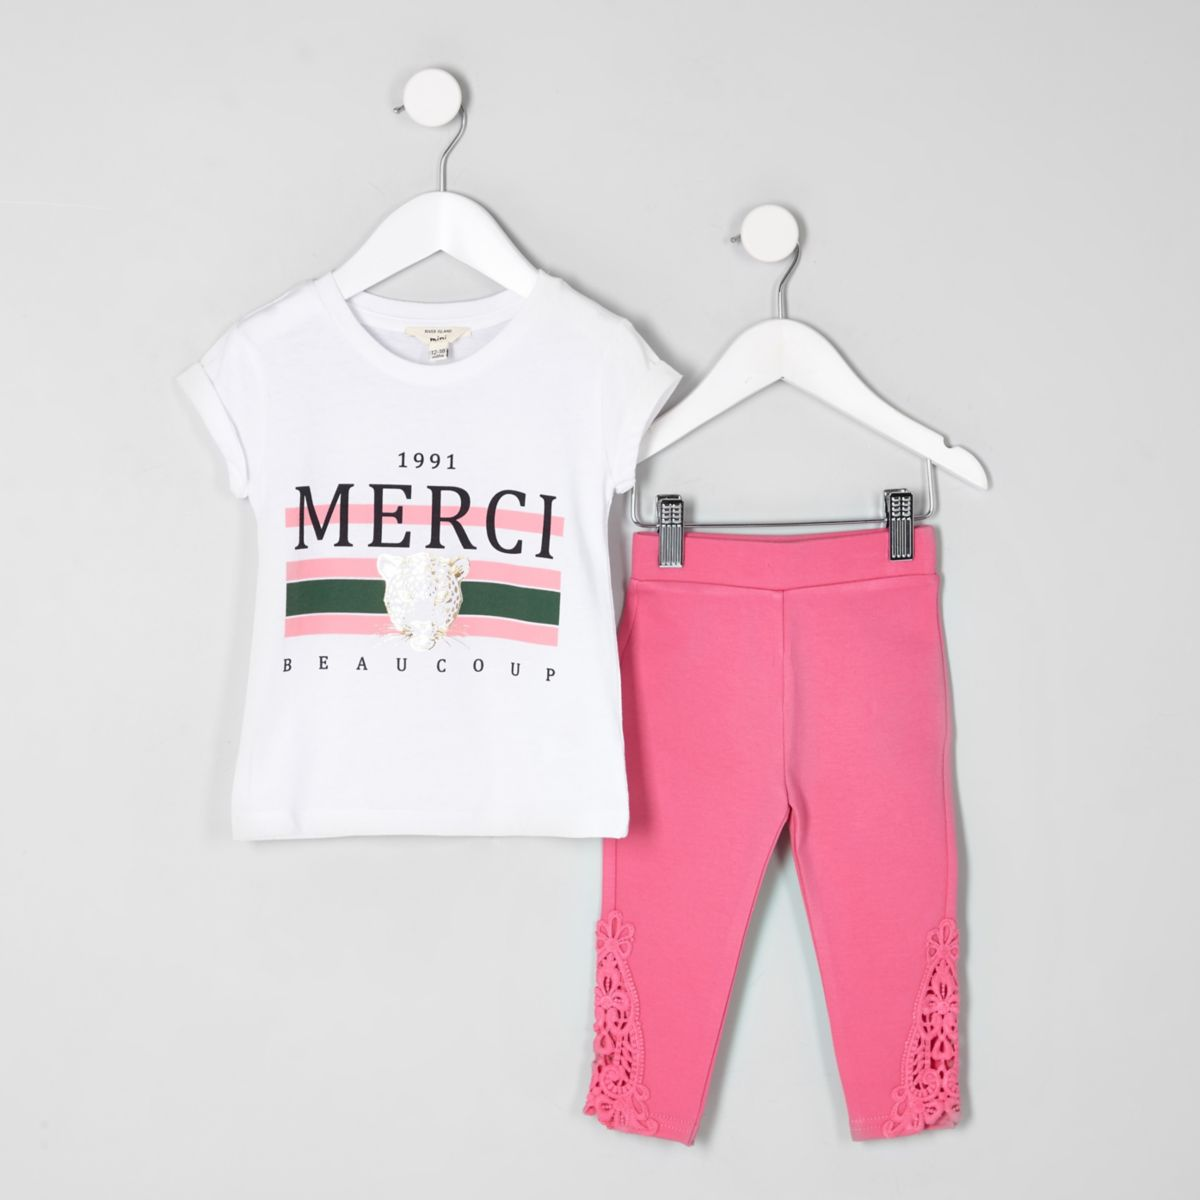 Mini girls white 'Merci' T-shirt outfit